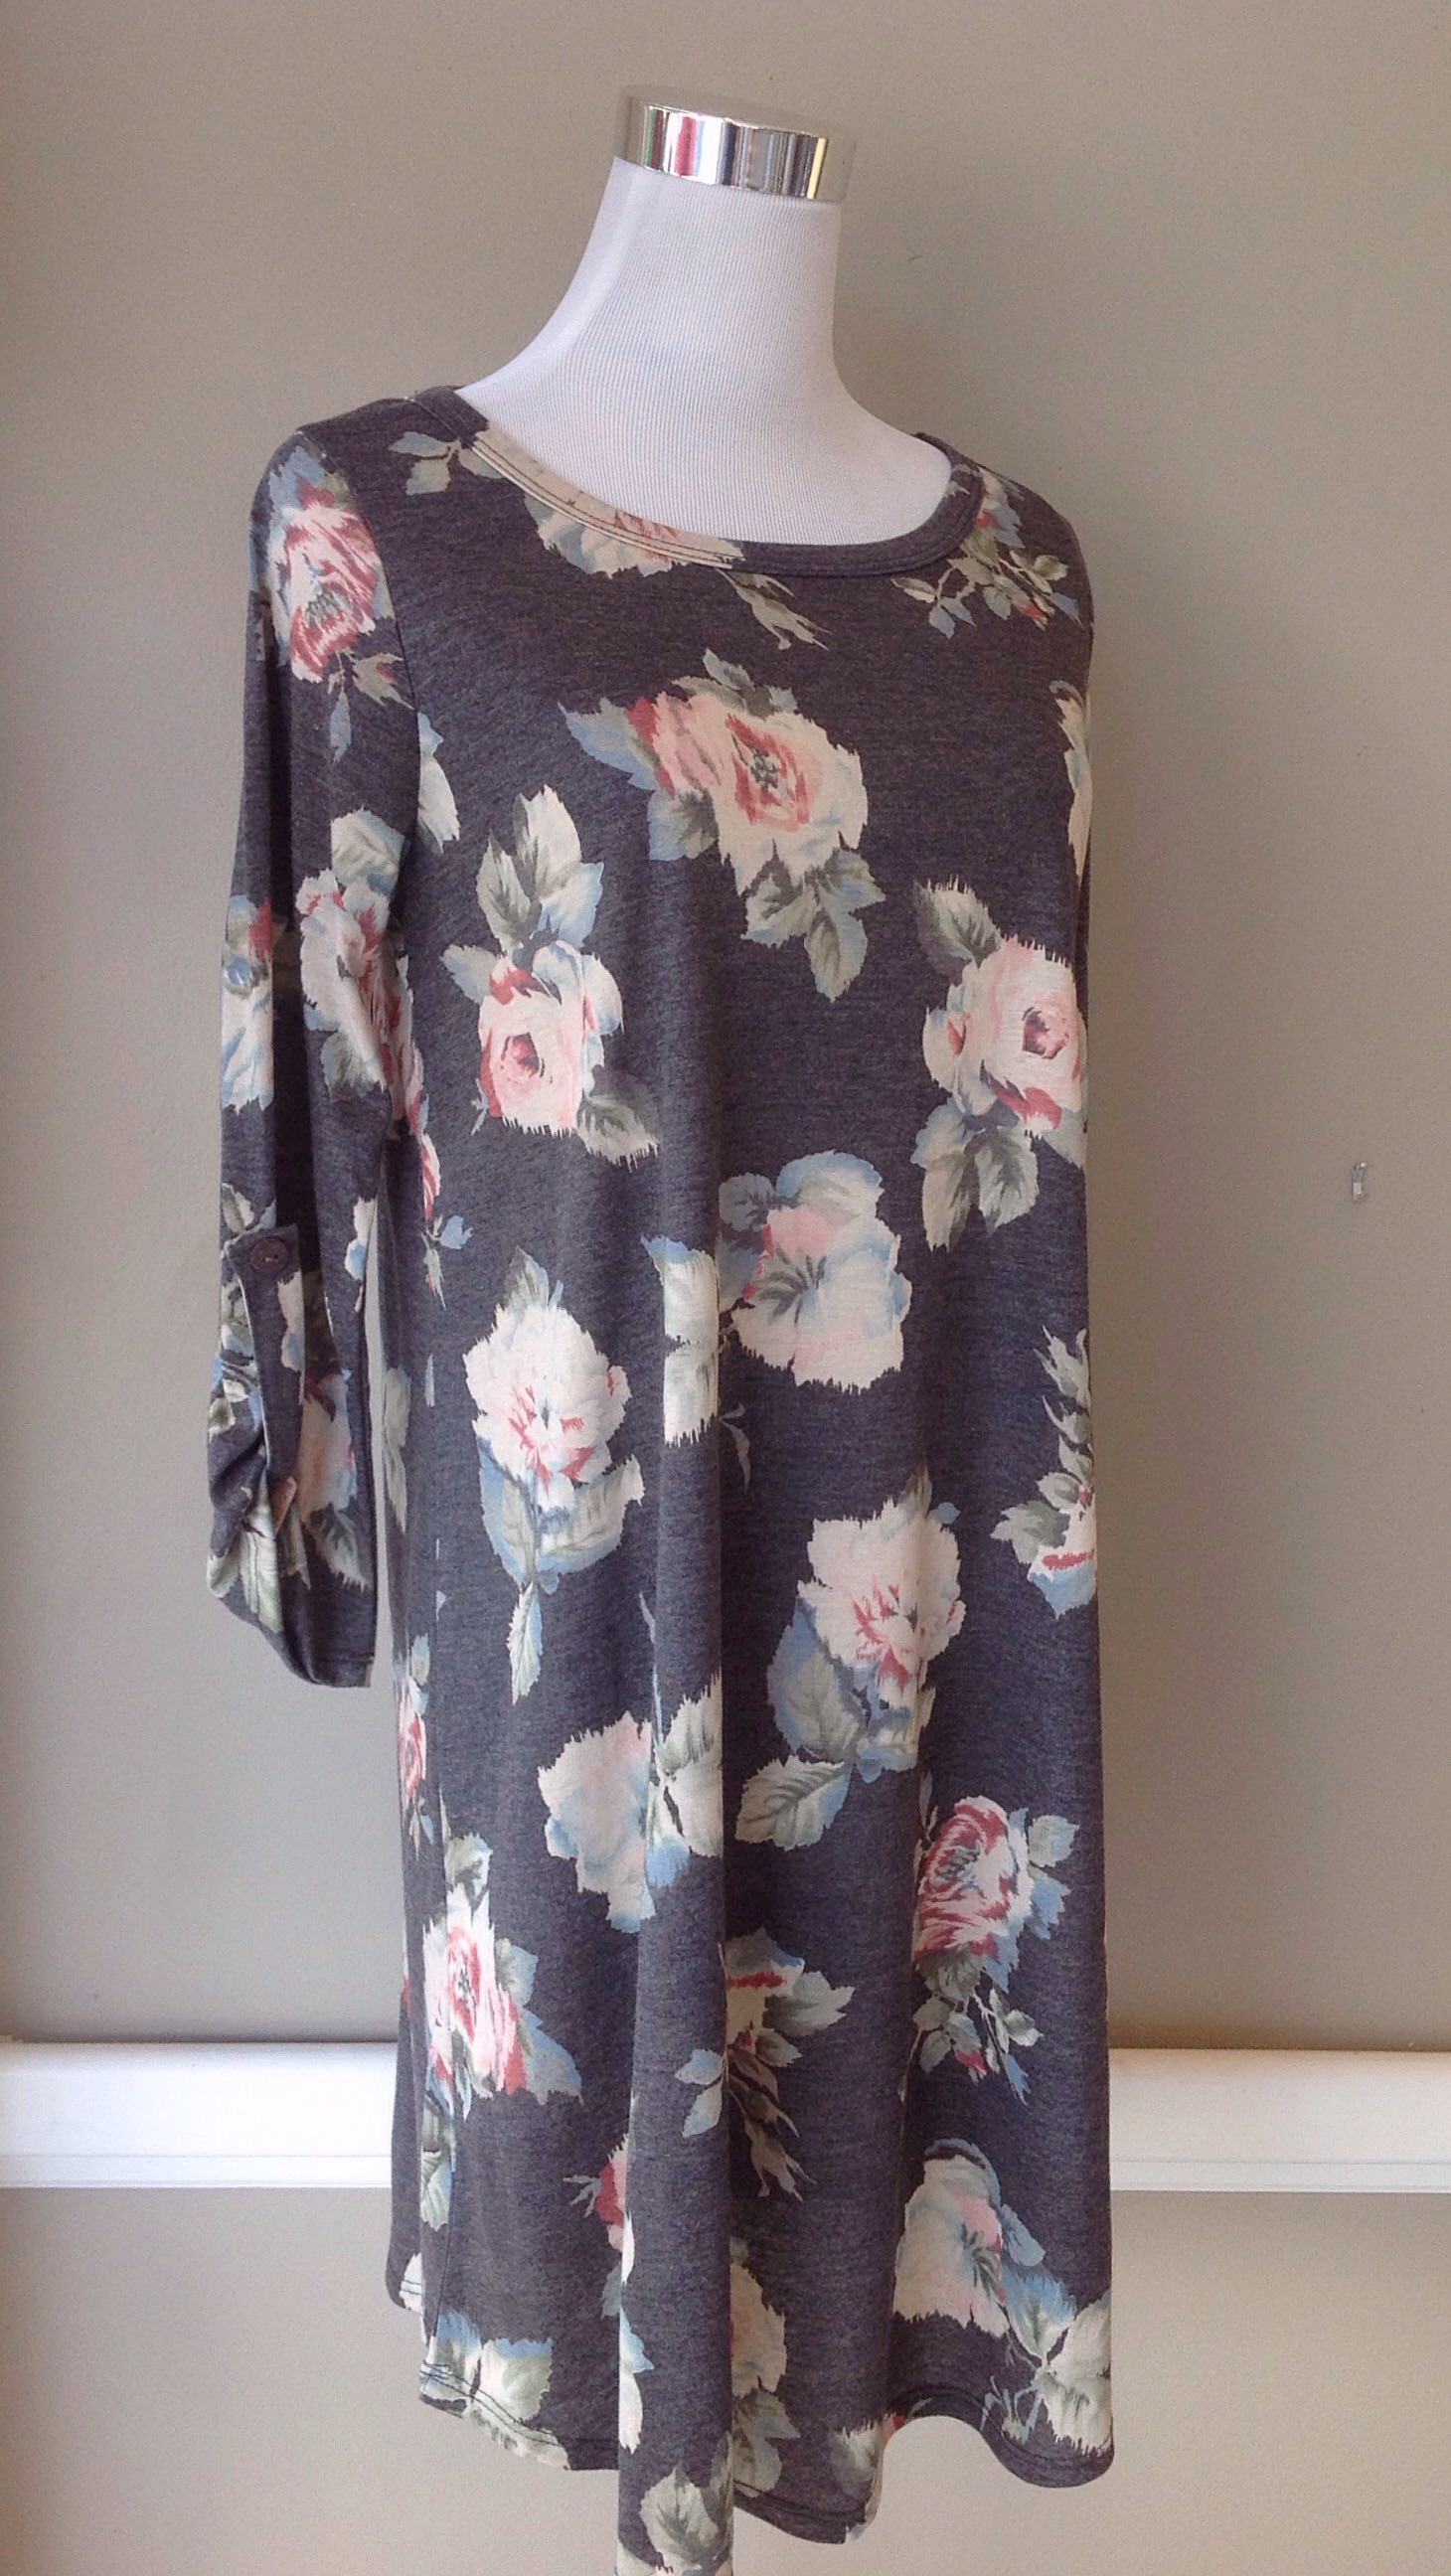 Charcoal floral print dress with button tab sleeves, $42